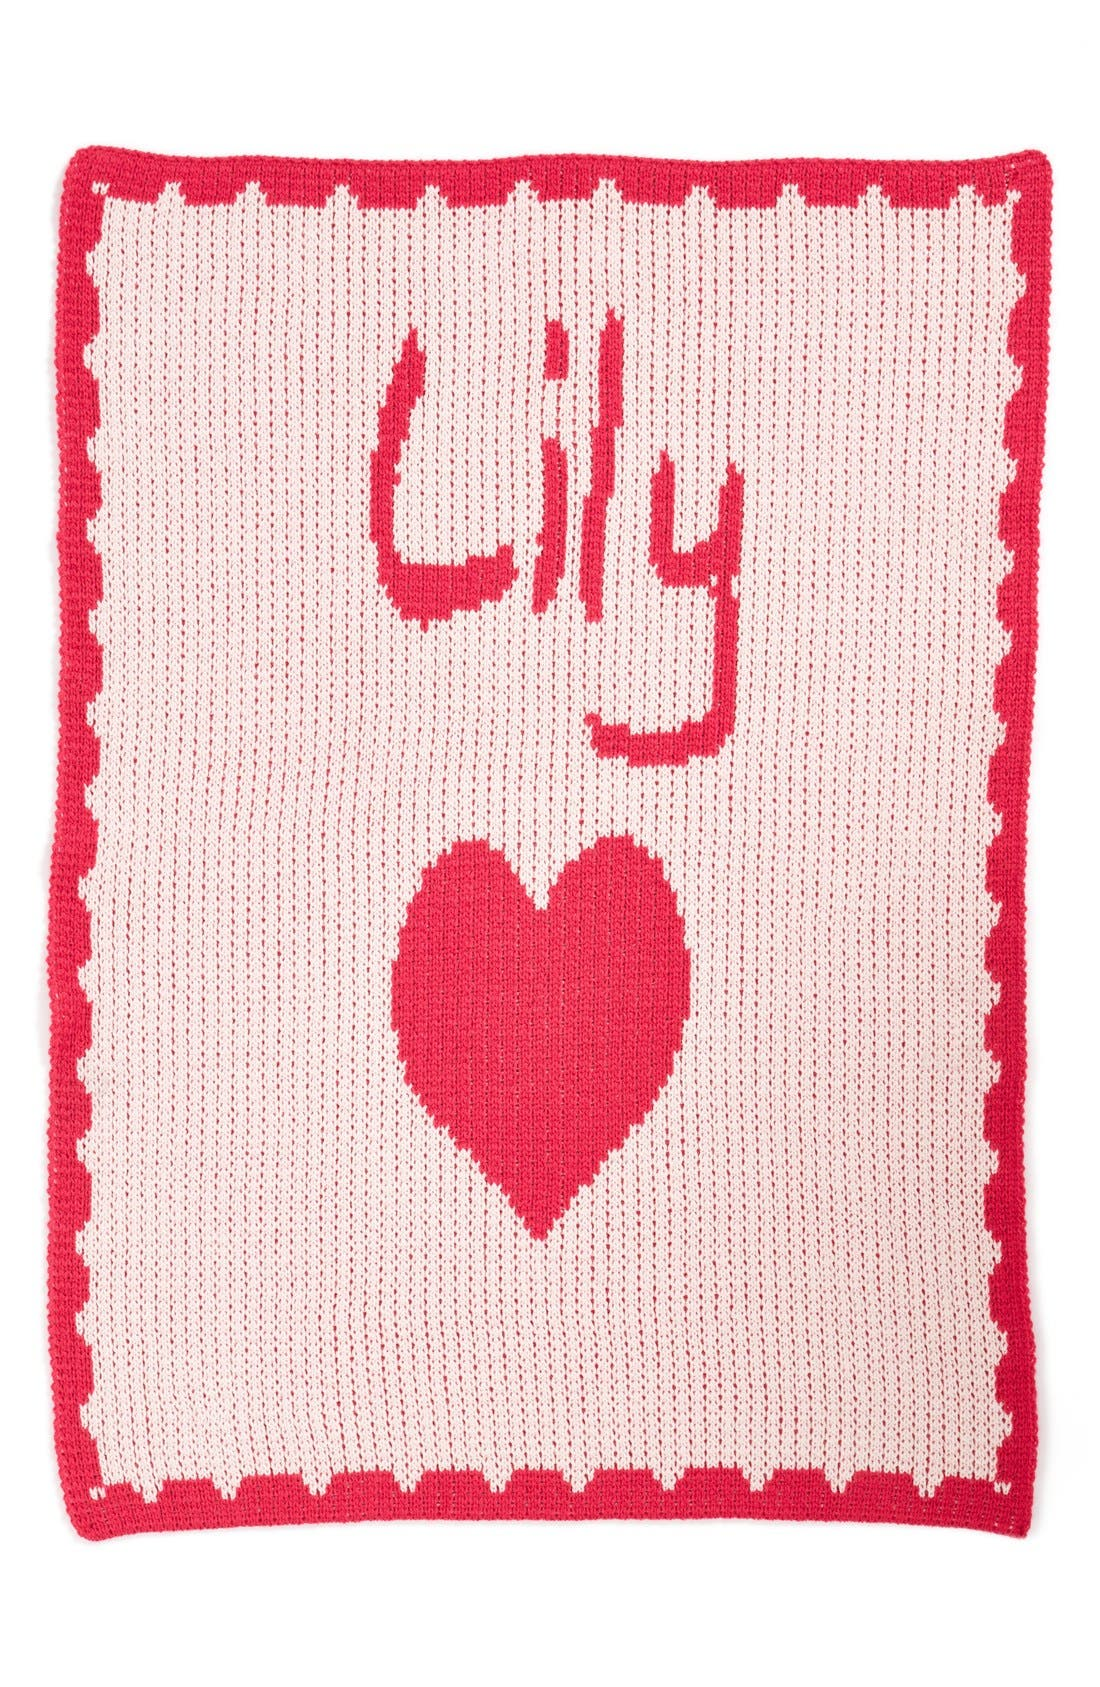 'Heart' Personalized Crib Blanket,                         Main,                         color, PALE PINK/ FUCHSIA